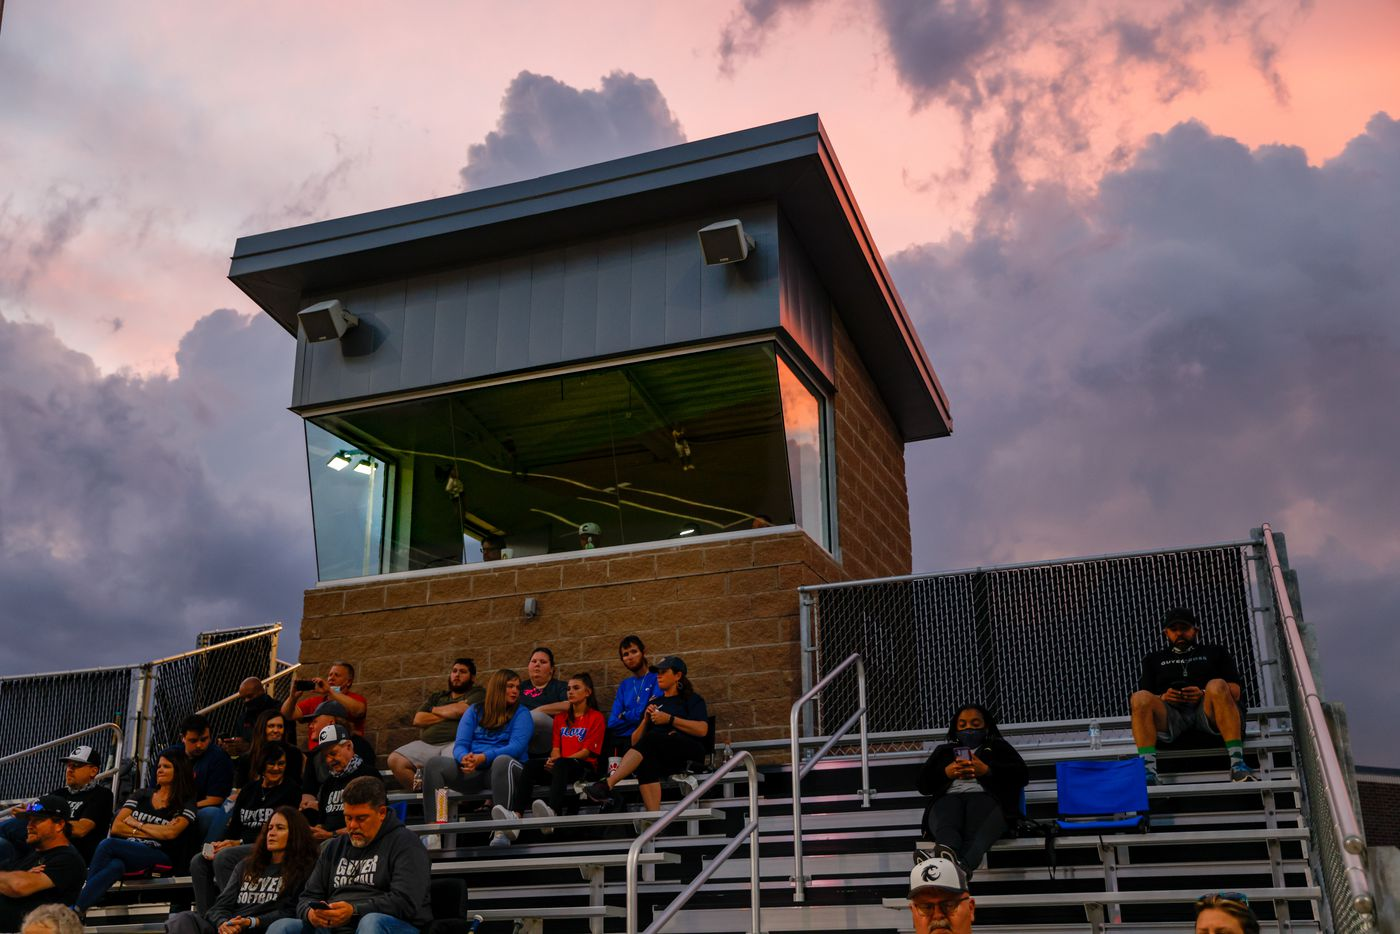 The sun sets as fans watch a nondistrict high school softball game between Denton Guyer and Keller in Denton on Tuesday, March 30, 2021. (Juan Figueroa/ The Dallas Morning News)